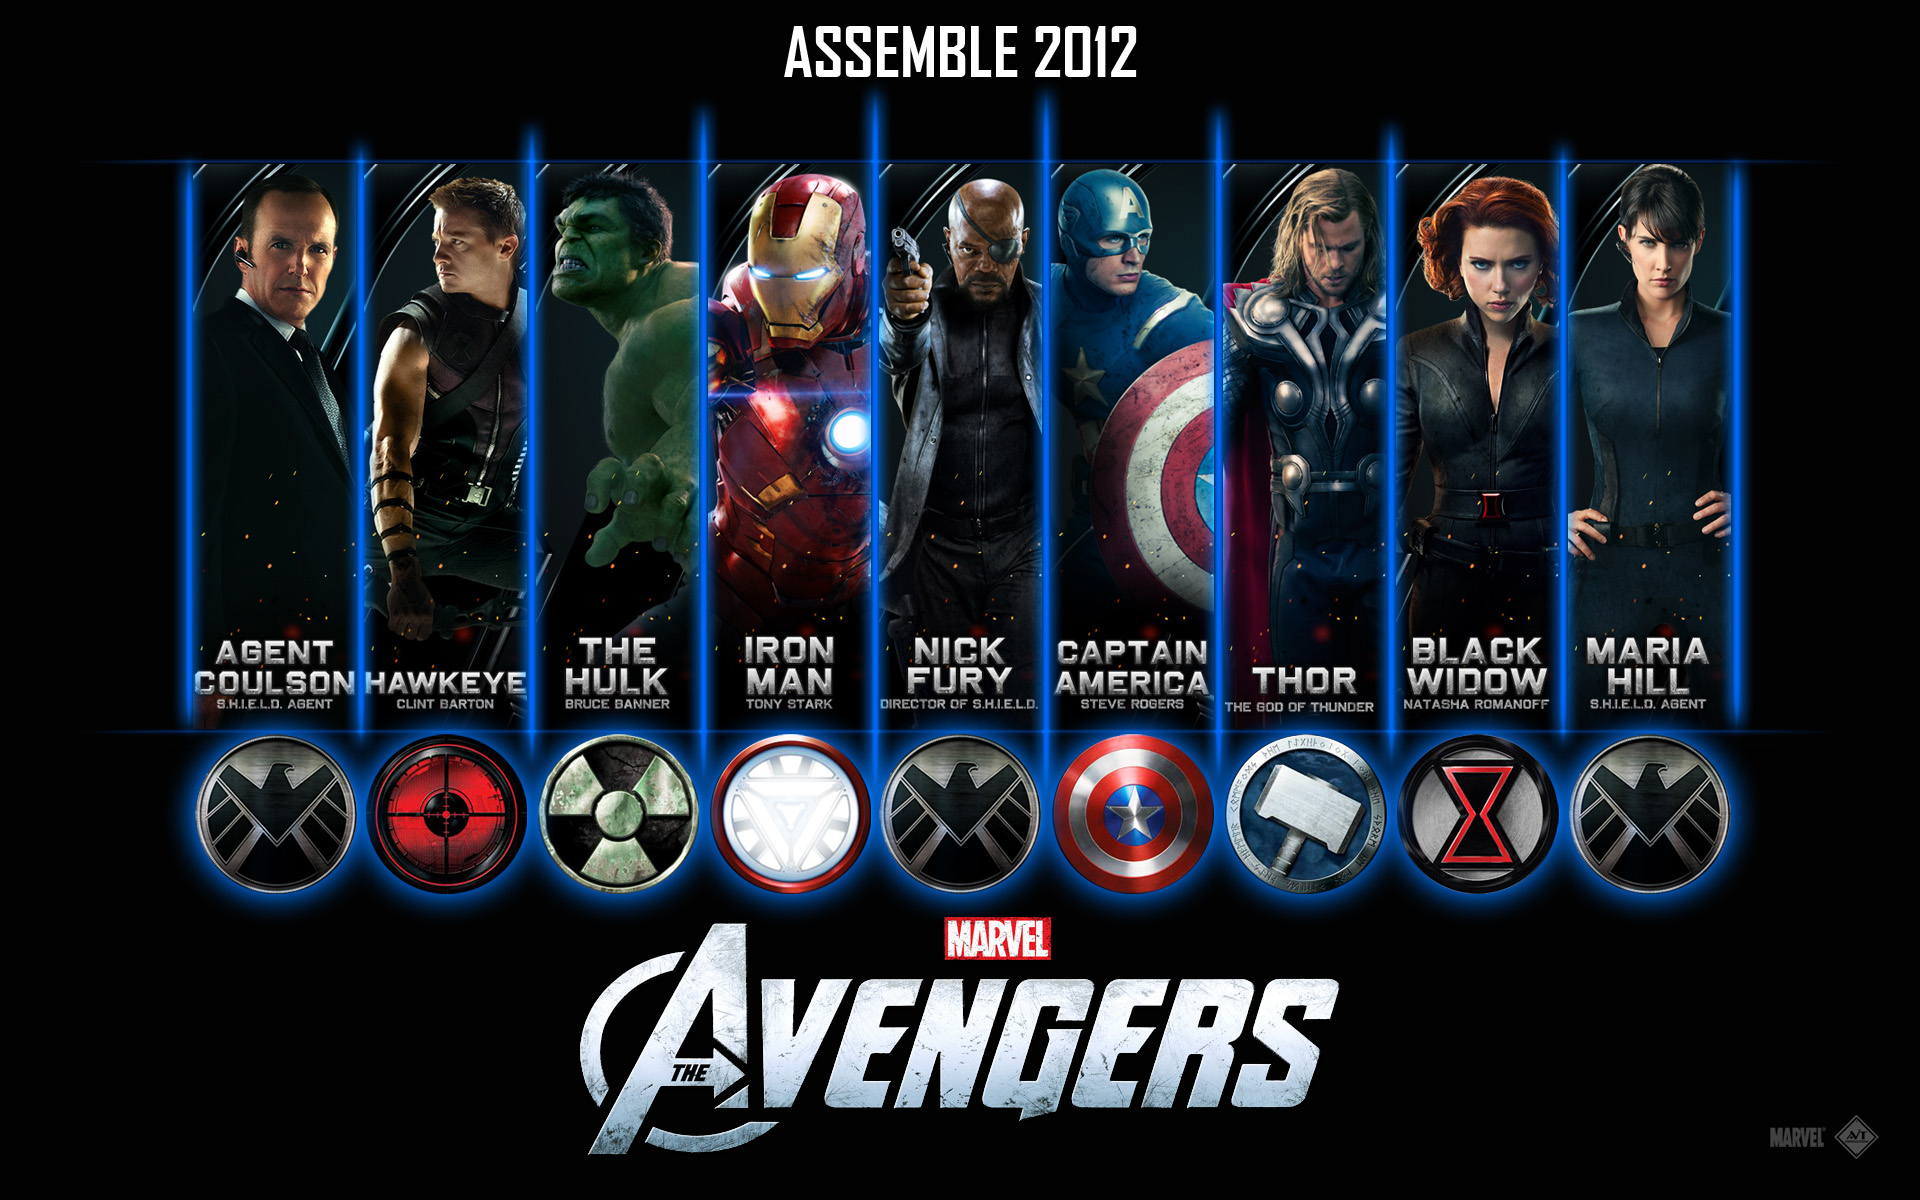 marvel avengers movie logo viewing gallery movie picture